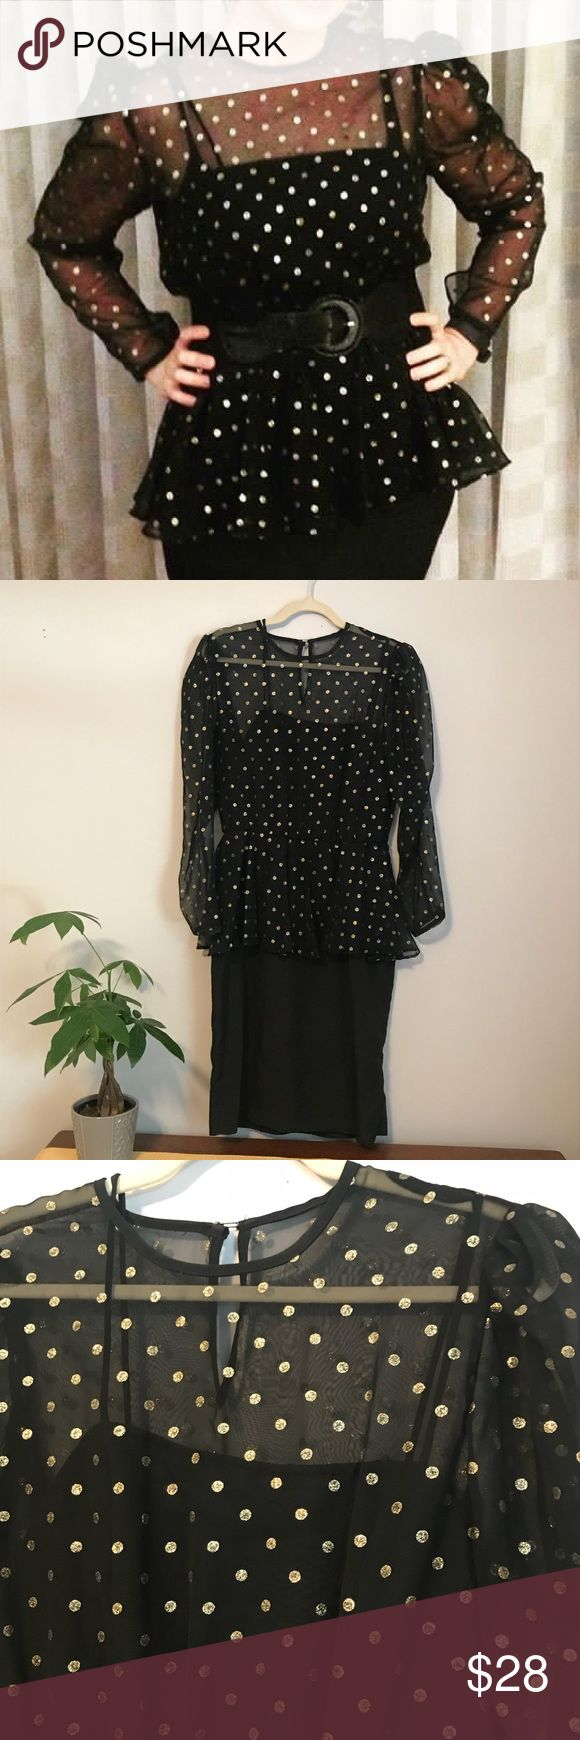 Vintage polka dot puffy shoulder peplum dress Adorable vintage black peplum dress with gold polka dots. Sheer long sleeve top with puffy shoulders and attached spaghetti strap top underneath.  Pencil skirt. Belt pictured in cover photo not included. Great pre owned condition. Size 14M. Vintage Dresses